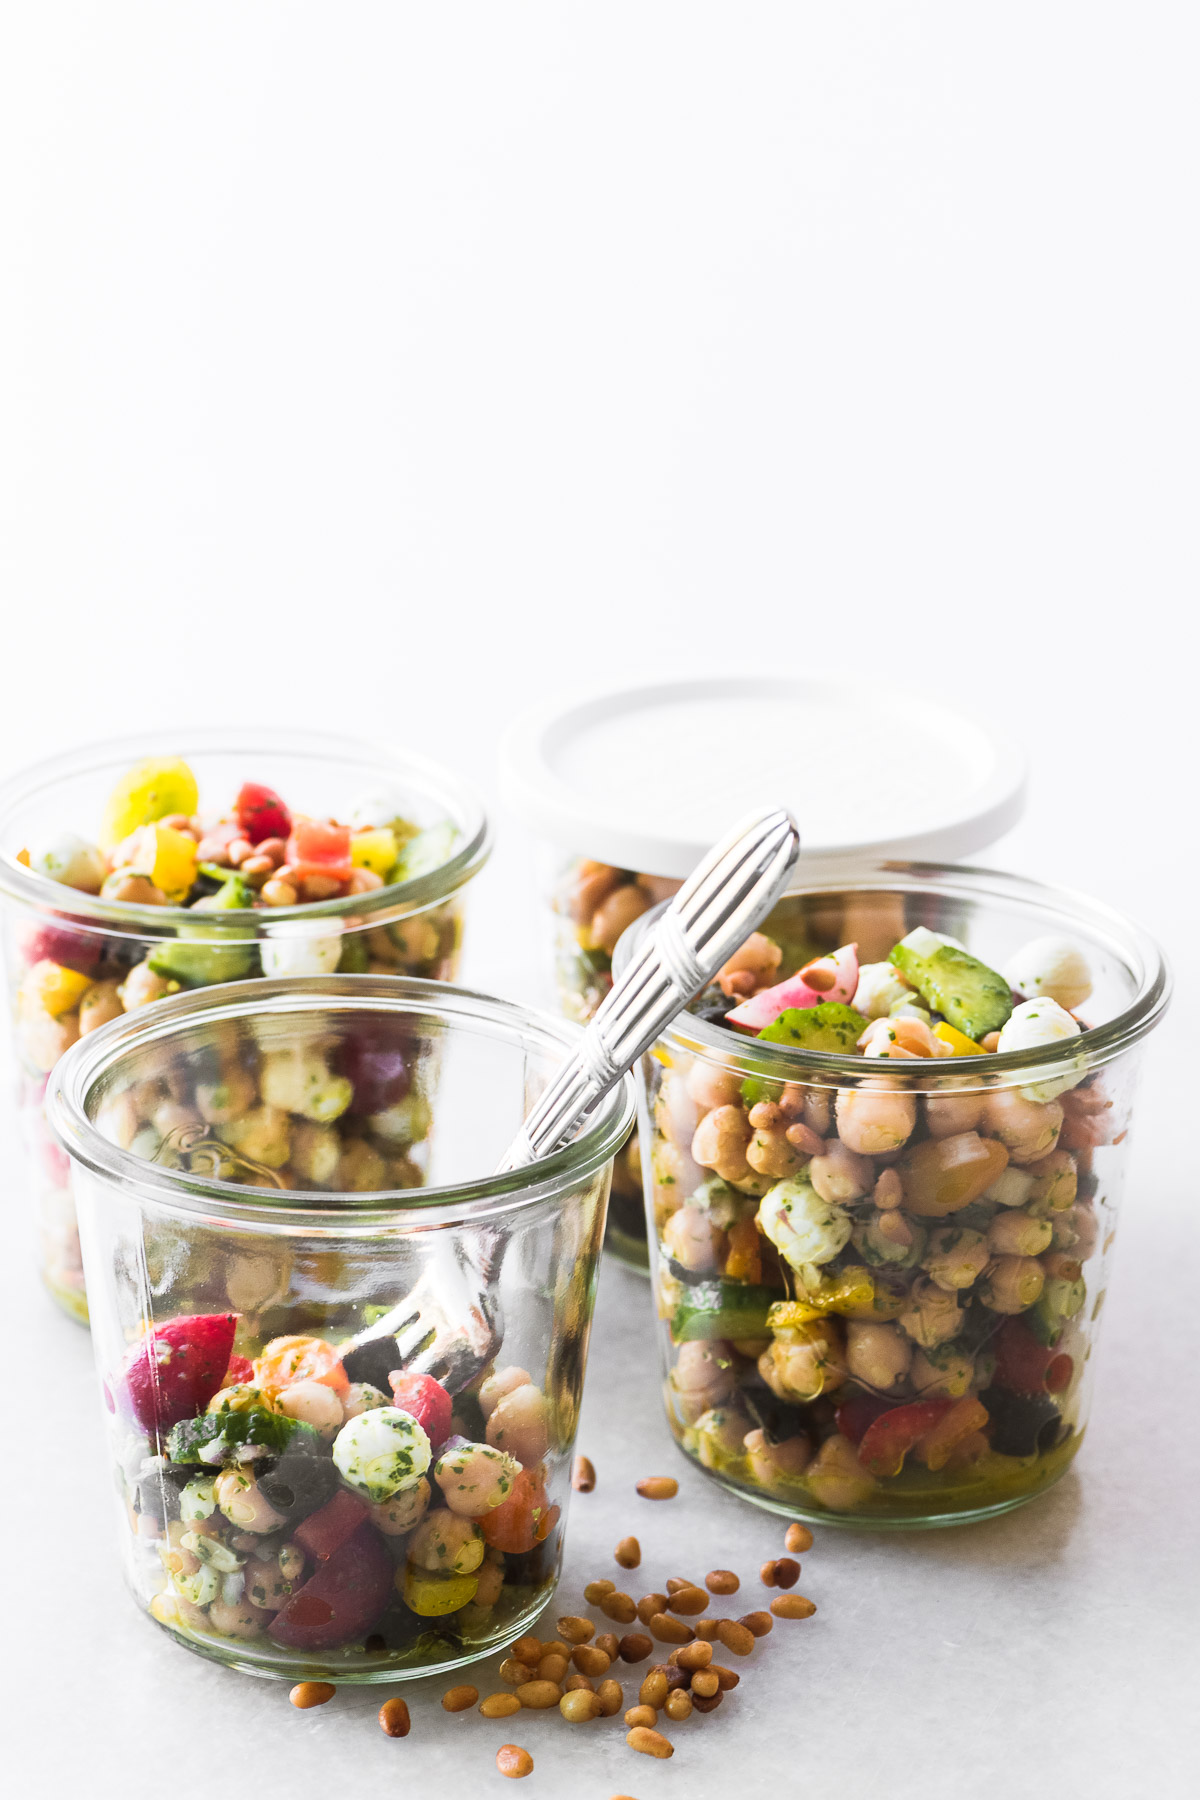 Weck Jars filled with Chickpea Salad with Pesto